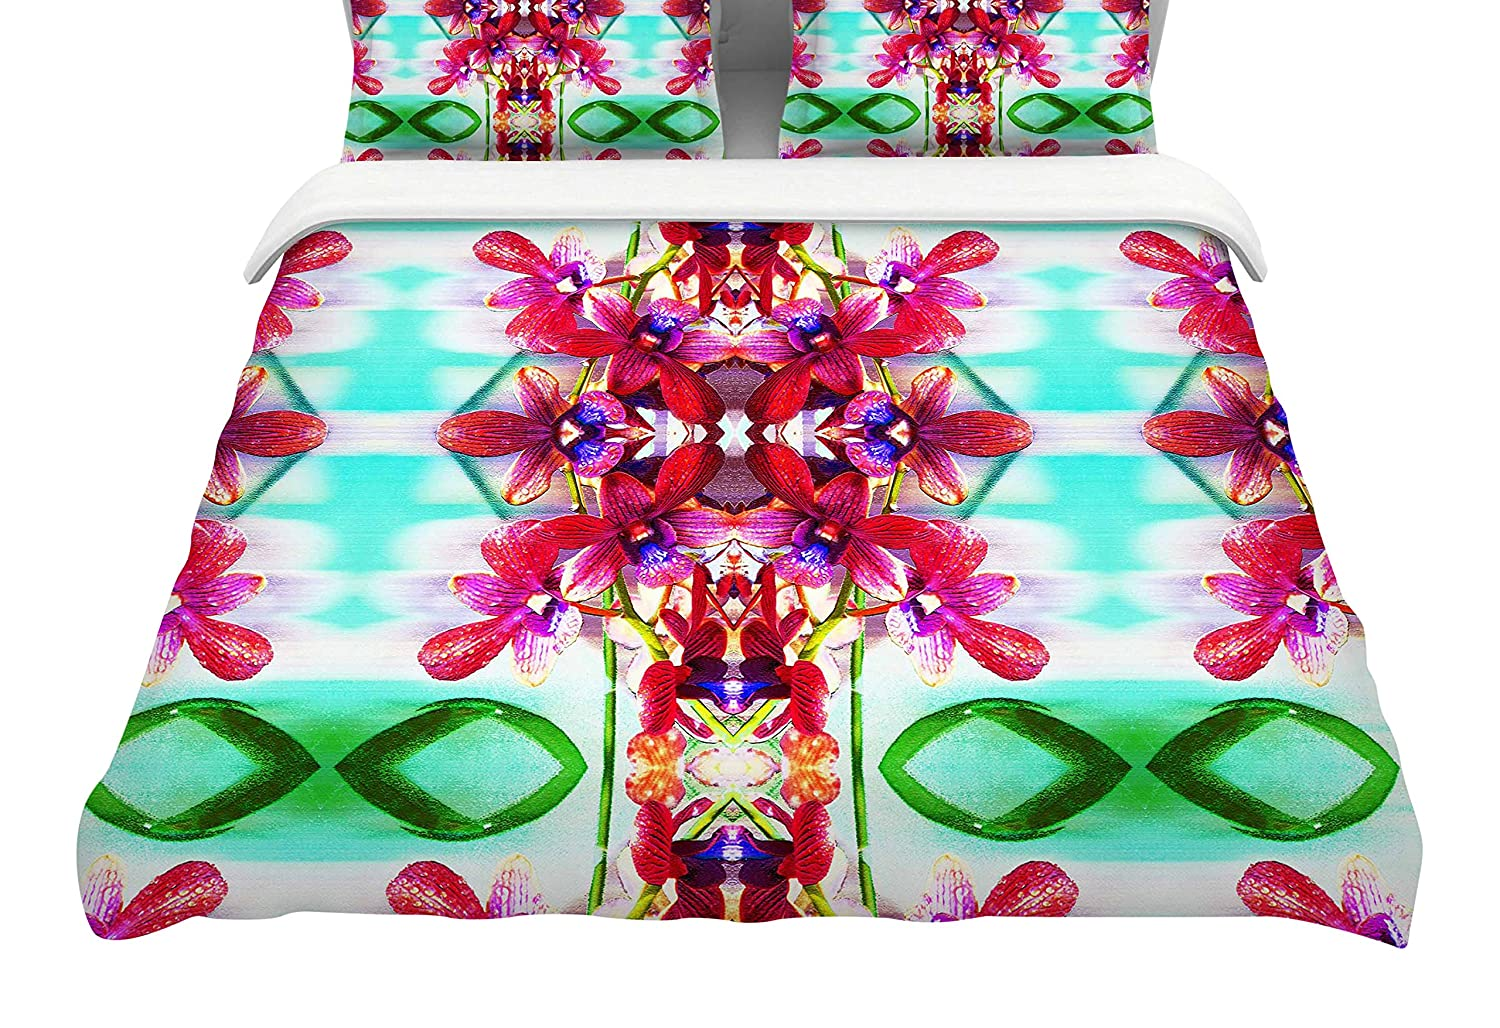 88 x 88, Kess InHouse Dawid ROC Tropical Floral Orchids 2 Featherweight Queen Duvet Cover